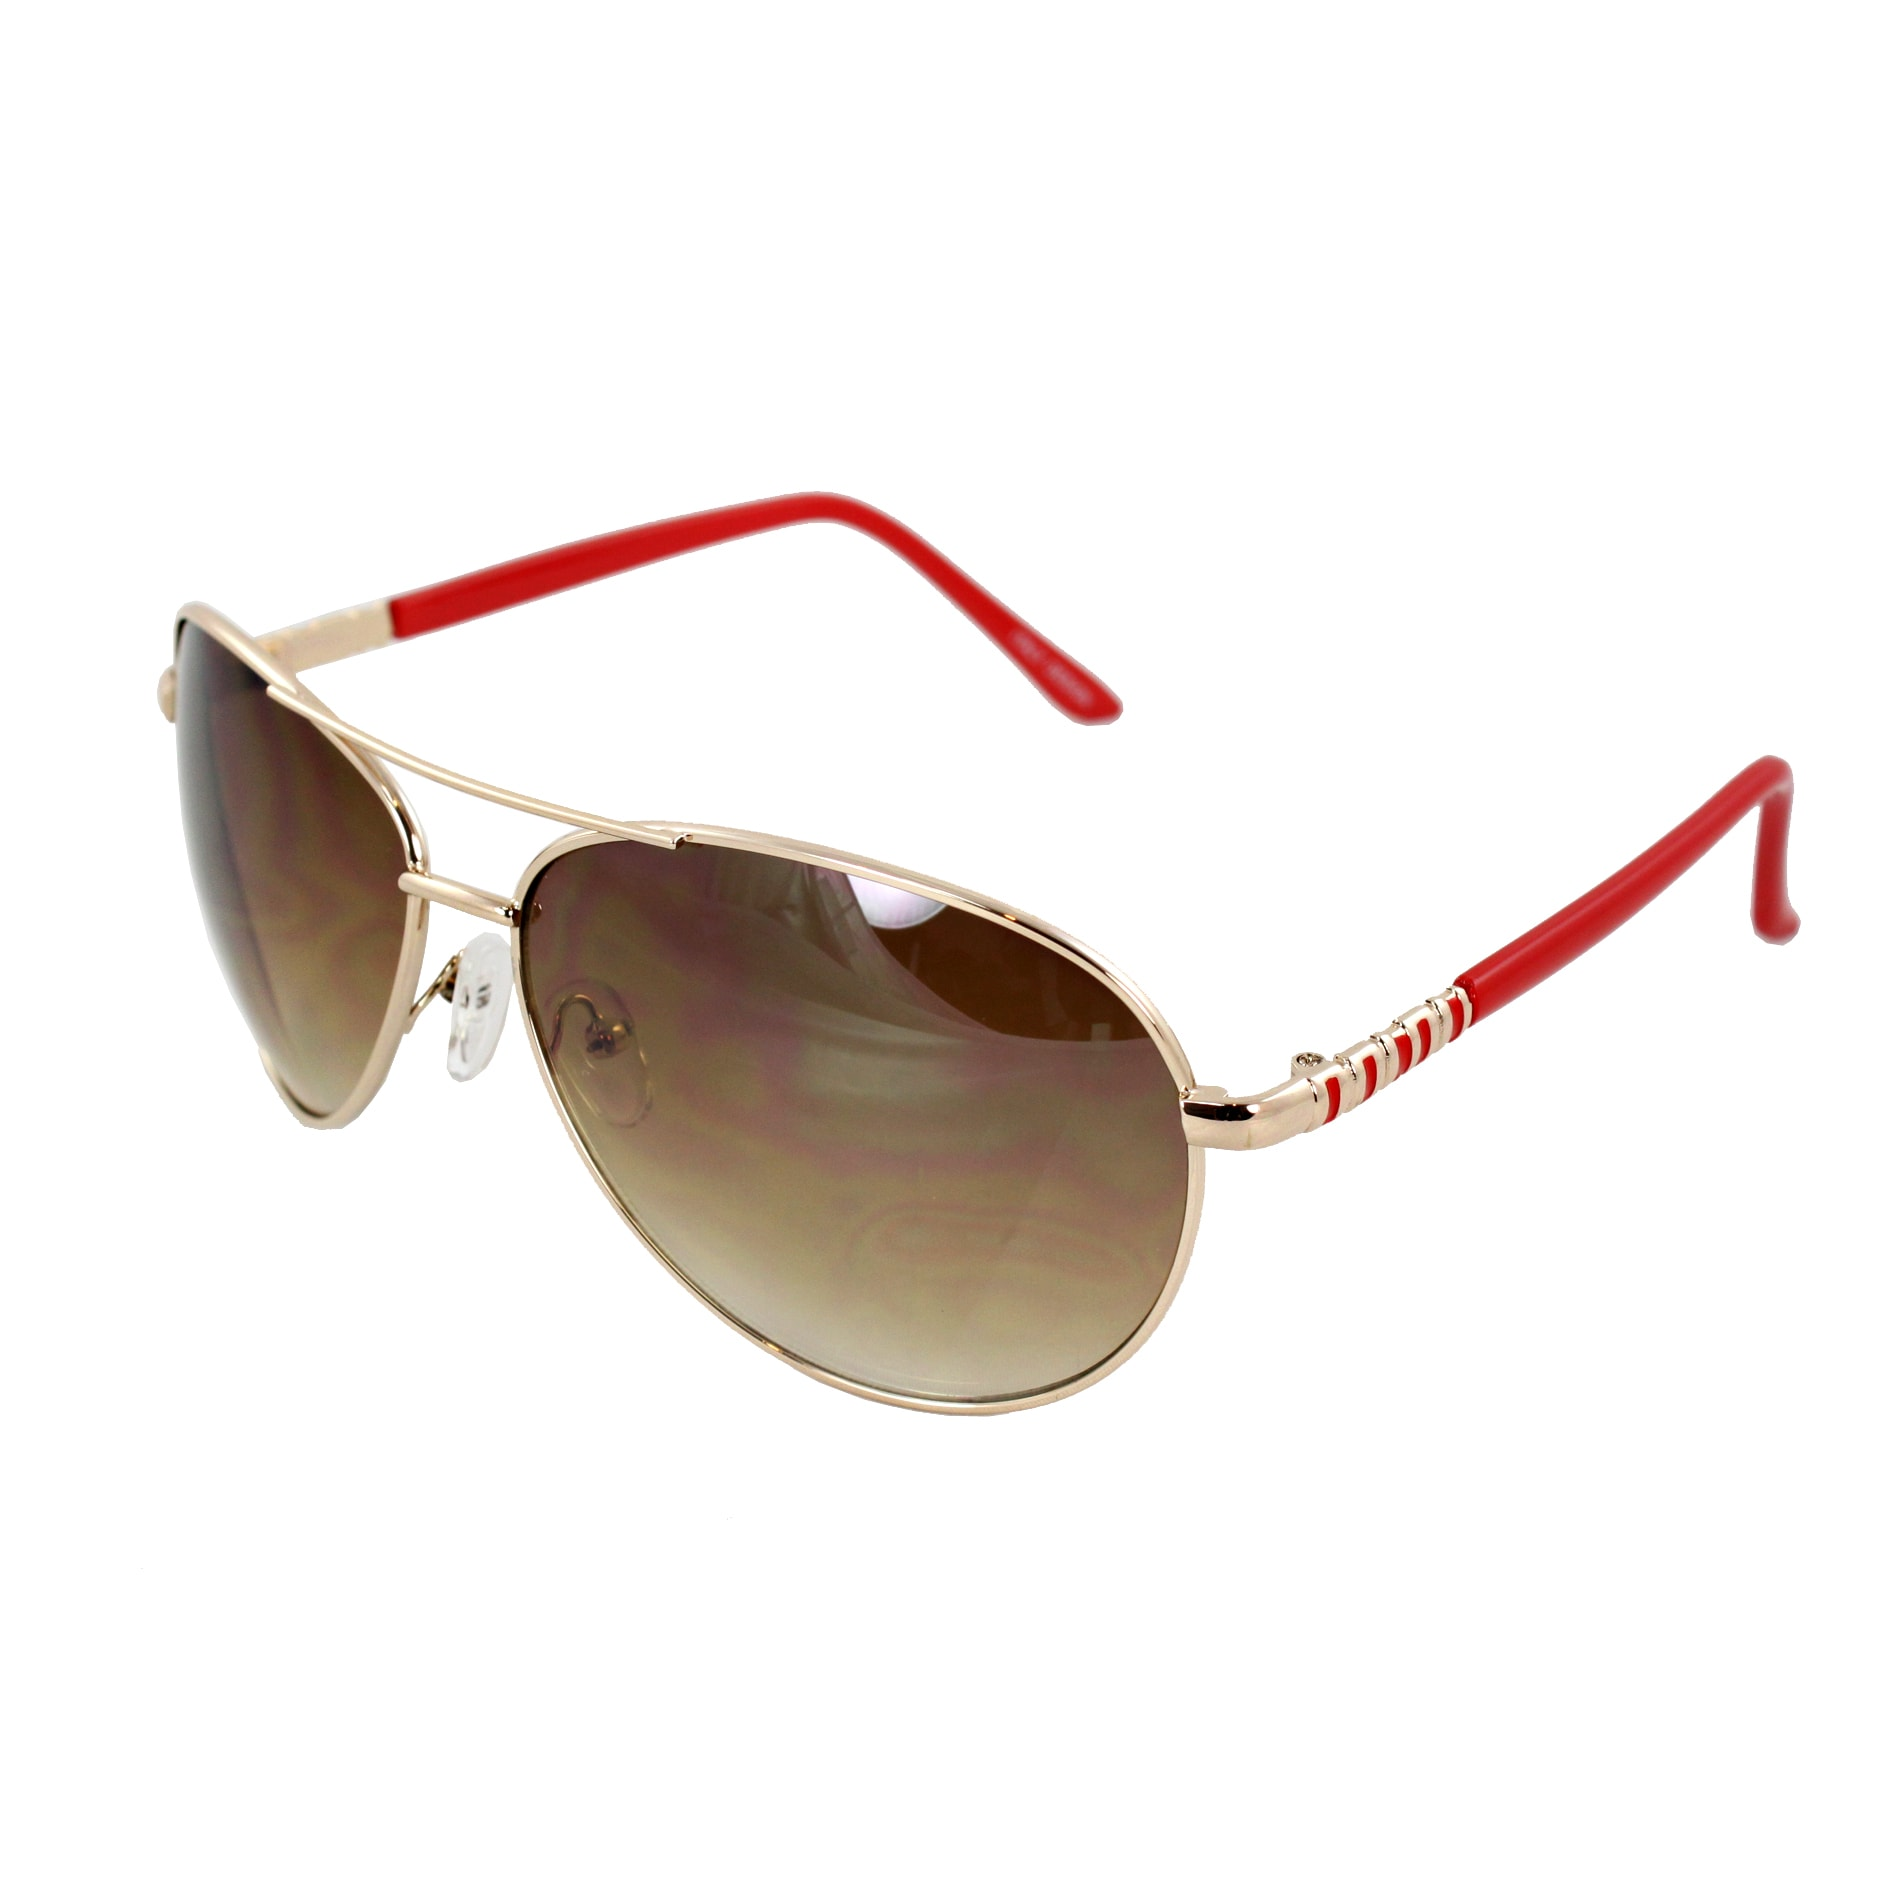 Red Lens Gold Frame Sunglasses : Pilot Fashion Aviator Sunglasses Gold and Red Frame Amber ...